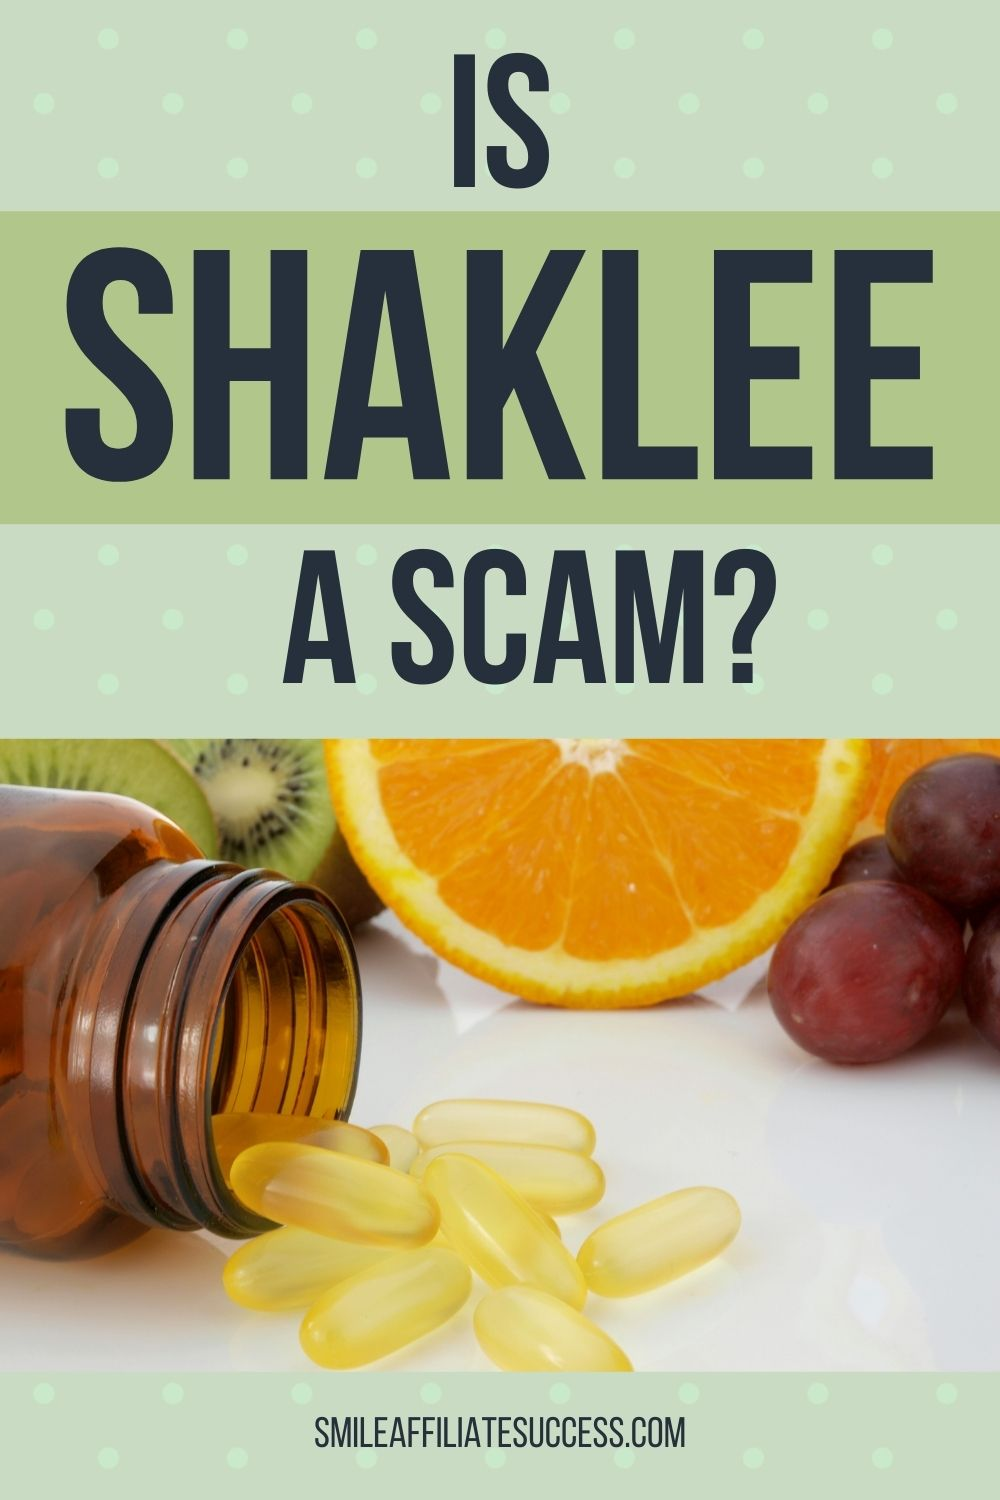 Is Shaklee A Scam?